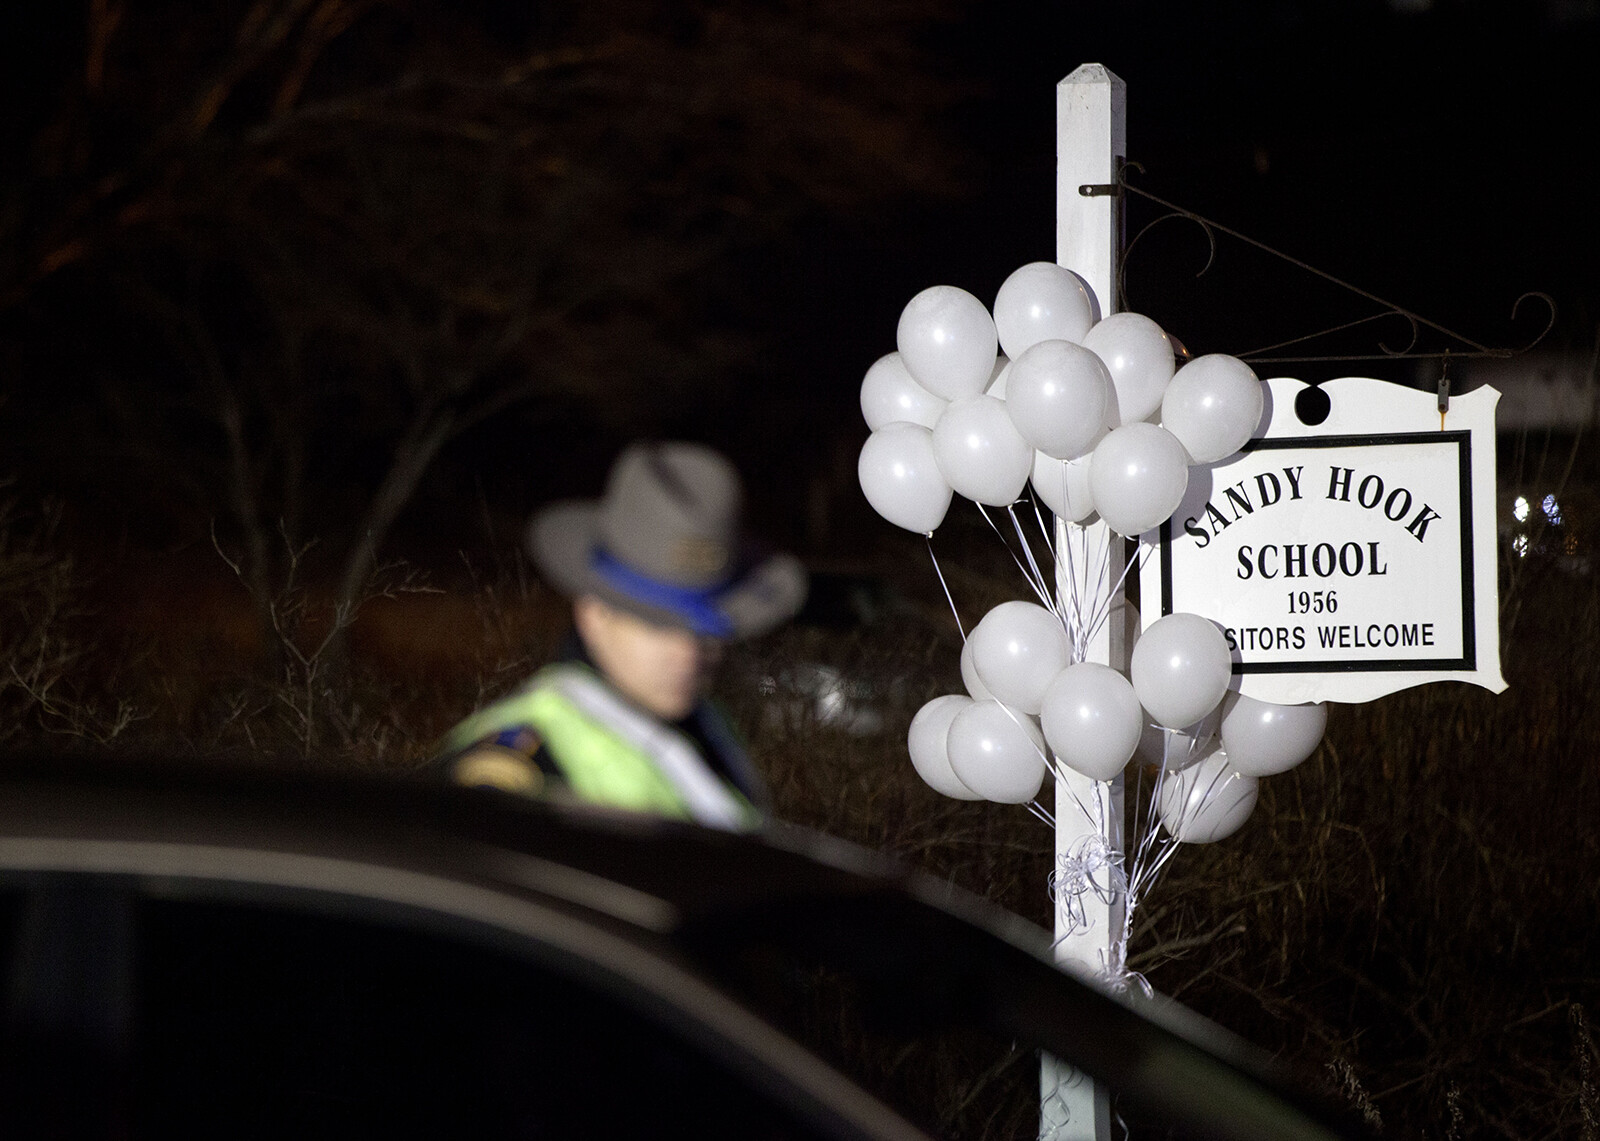 <i>David Goldman/AP</i><br/>White balloons decorate the sign for the Sandy Hook Elementary School as a Connecticut State Trooper stands guard at the school's entrance in 2012 in Newtown